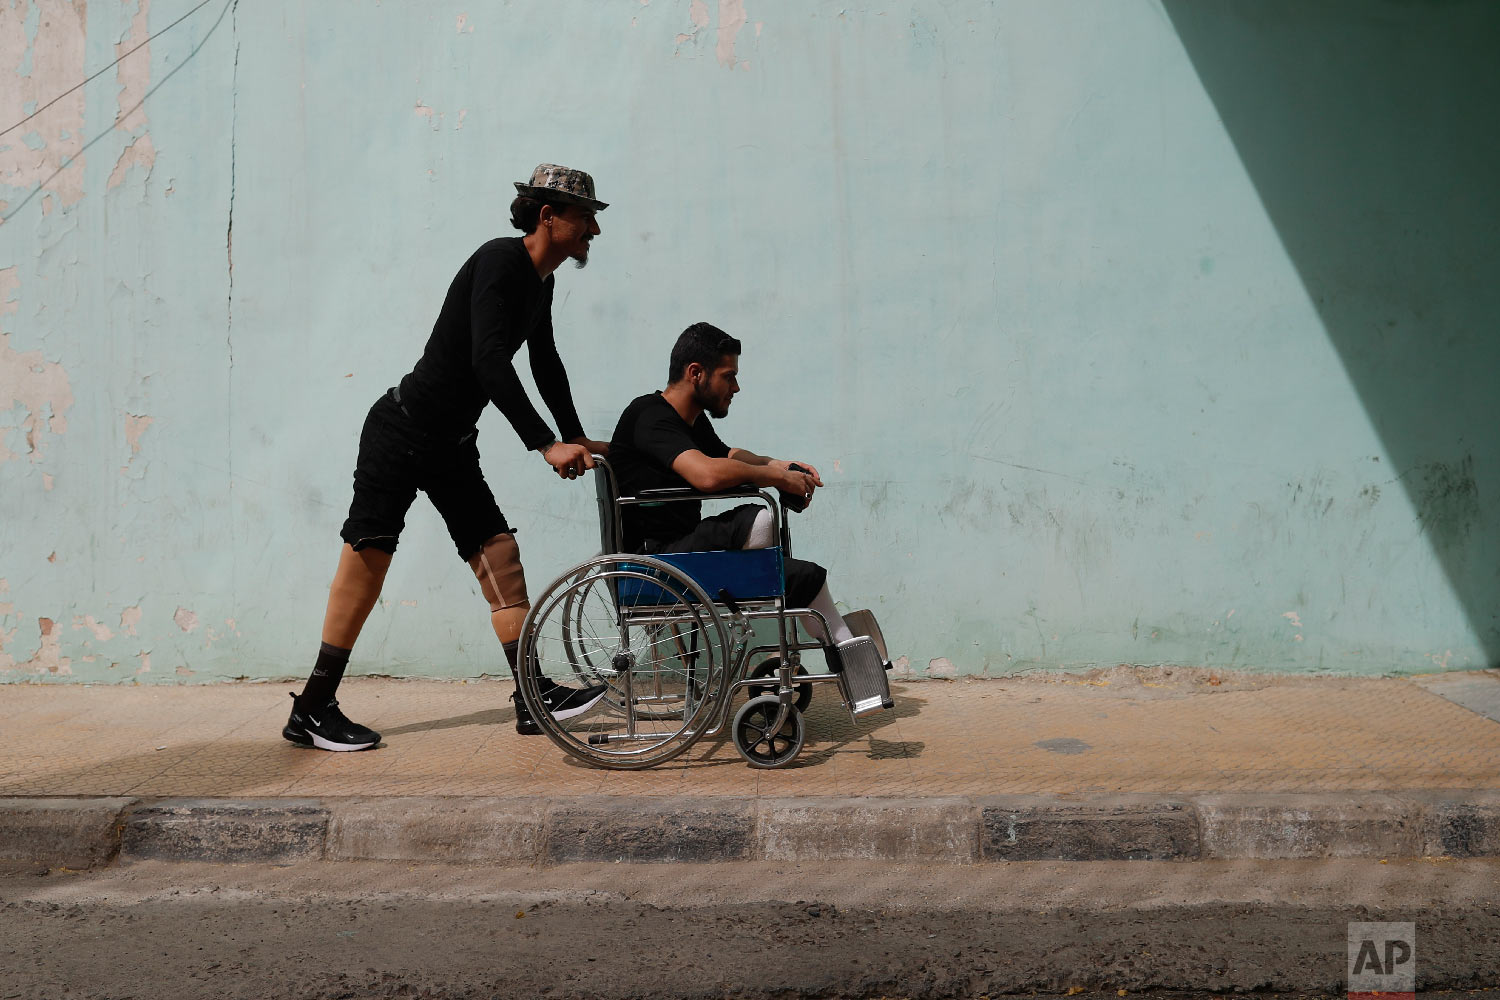 A Syrian soldier who lost his legs while fighting in Syria's war, helps his comrade after a physical therapy session, at the Ahmad Hamish Martyr hospital in Damascus, Syria, Oct. 7, 2018. (AP Photo/Hassan Ammar)